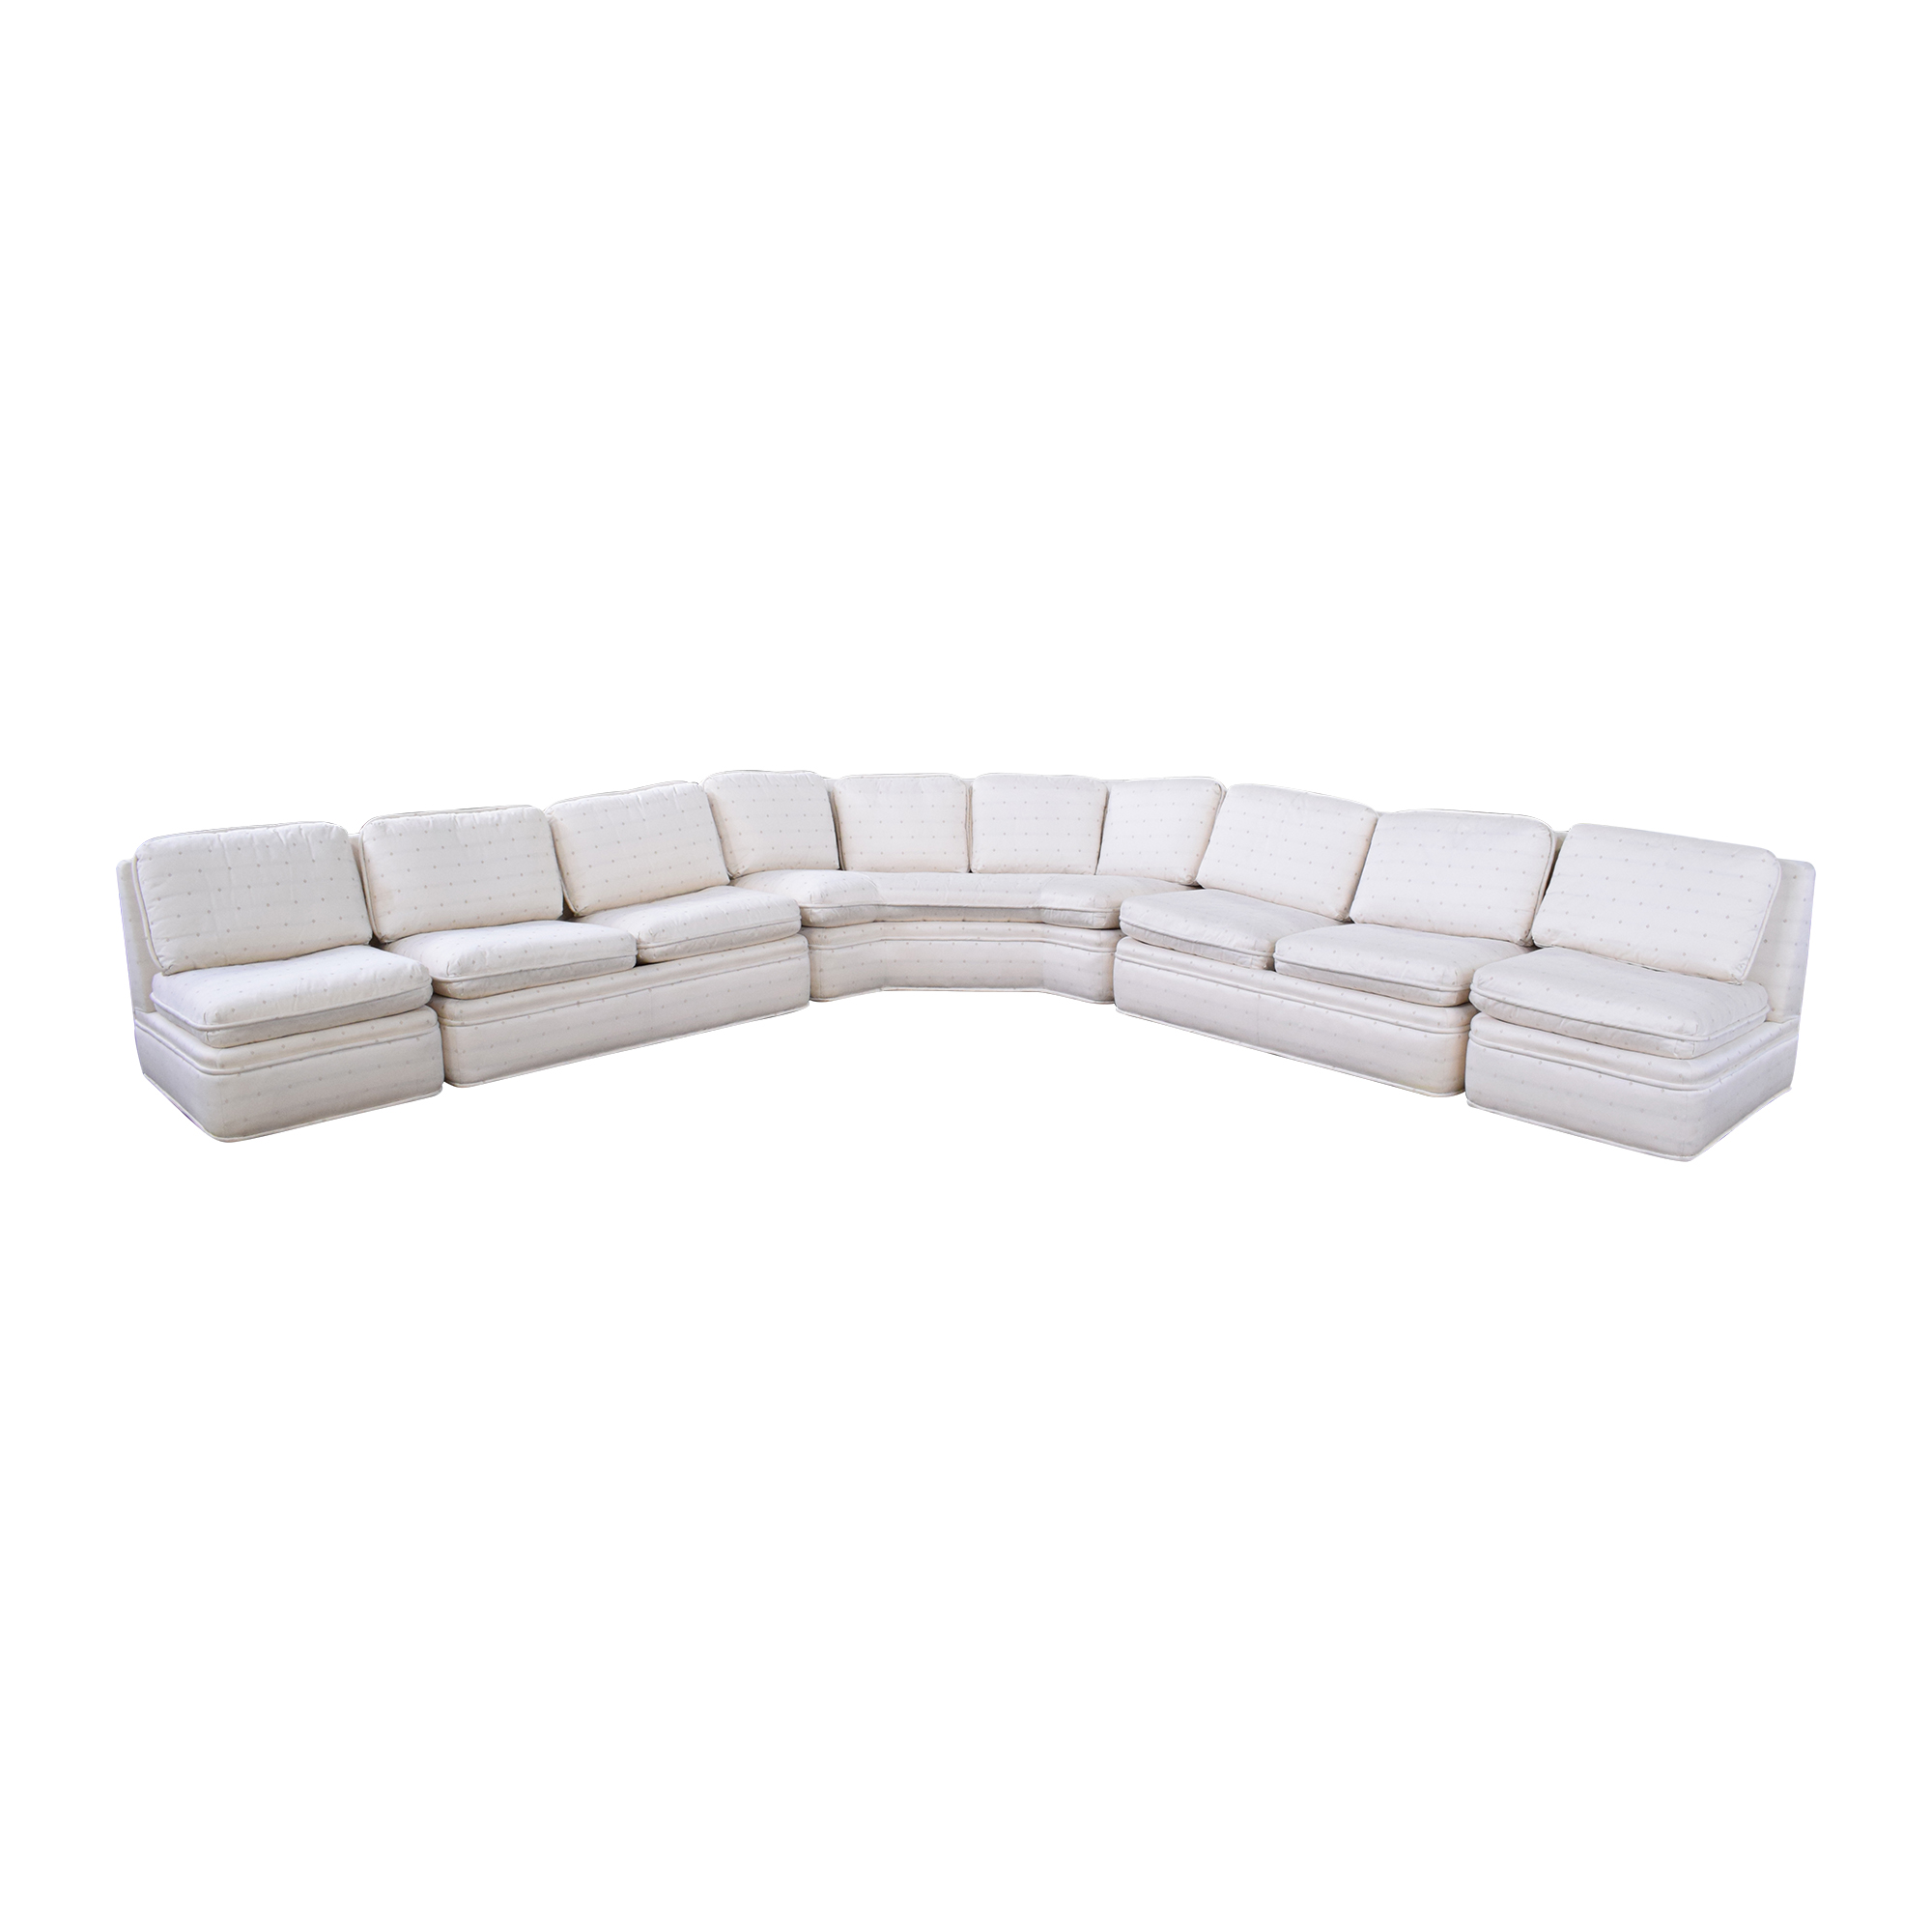 Baker Furniture Baker Fabric Sectional Sofa ma